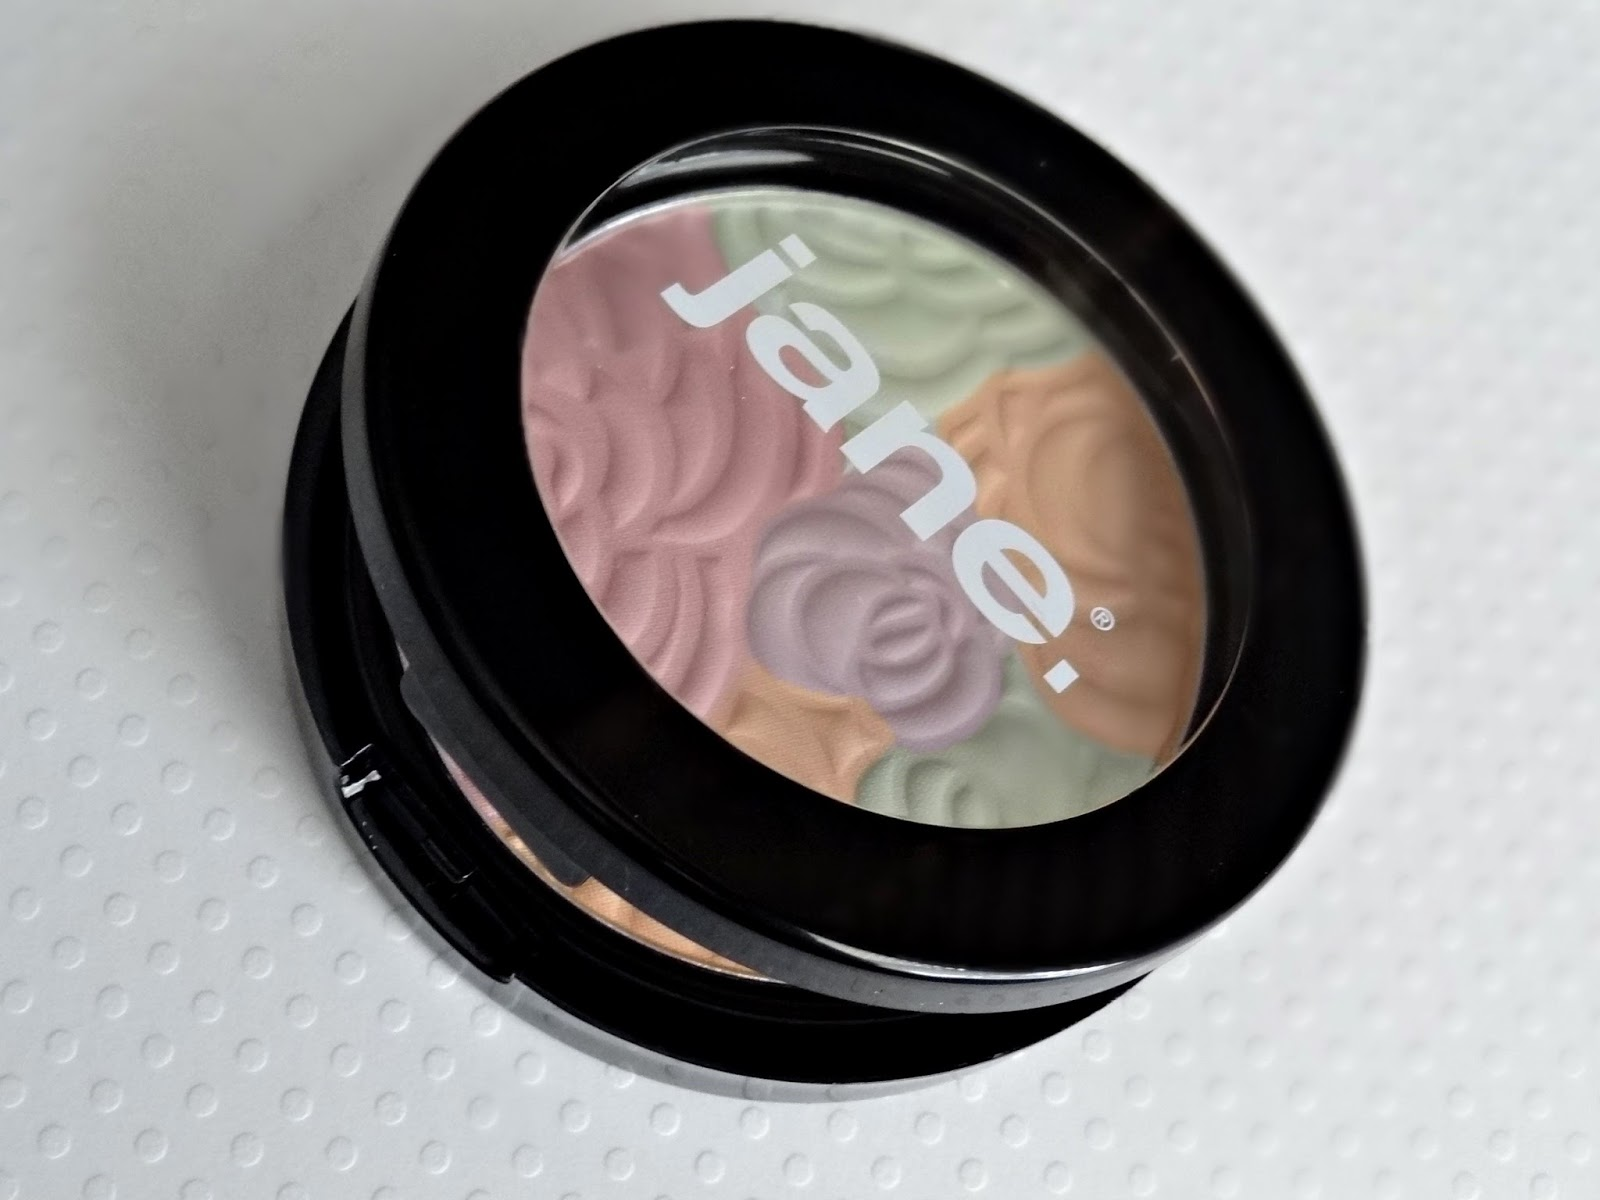 Makeup beauty and more jane cosmetics multi colored color correcting - Jane Pressed Powder Over Bourjois Healthy Mix Foundation In 55 And Nars Radiant Creamy Concealer To Conceal All Blemishes